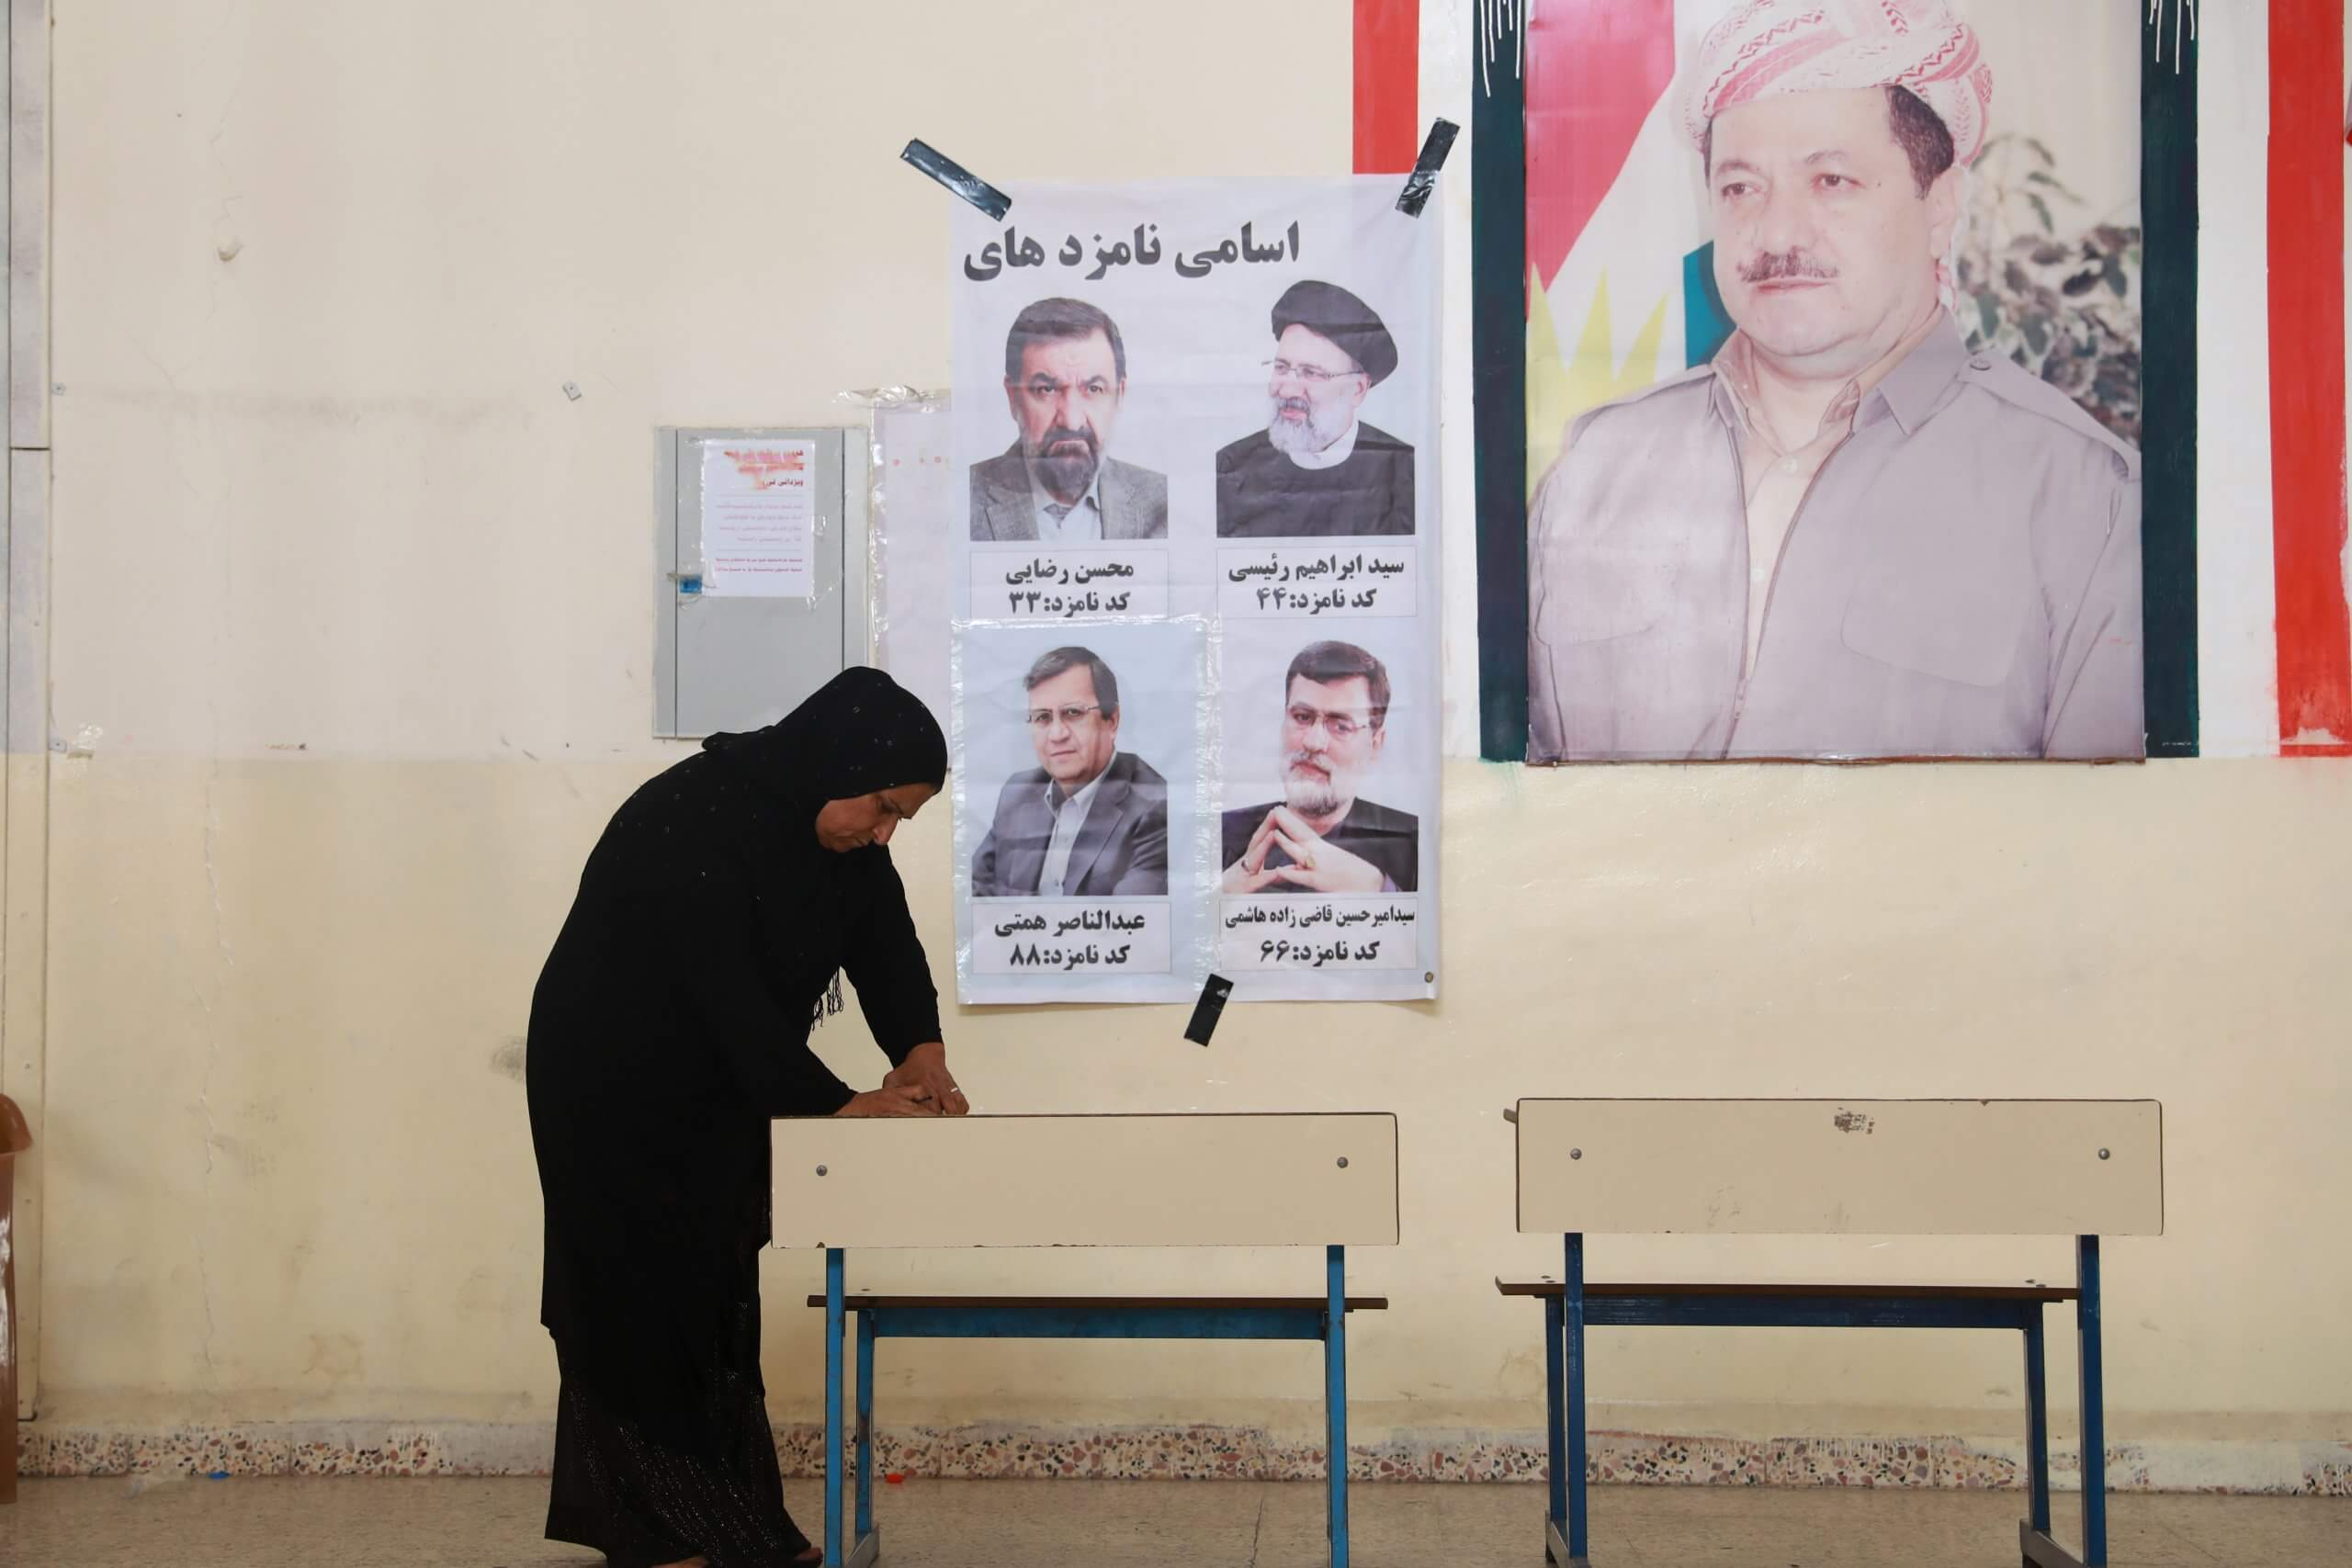 Sign up: Online training for journalists in coverage of Iraqi elections